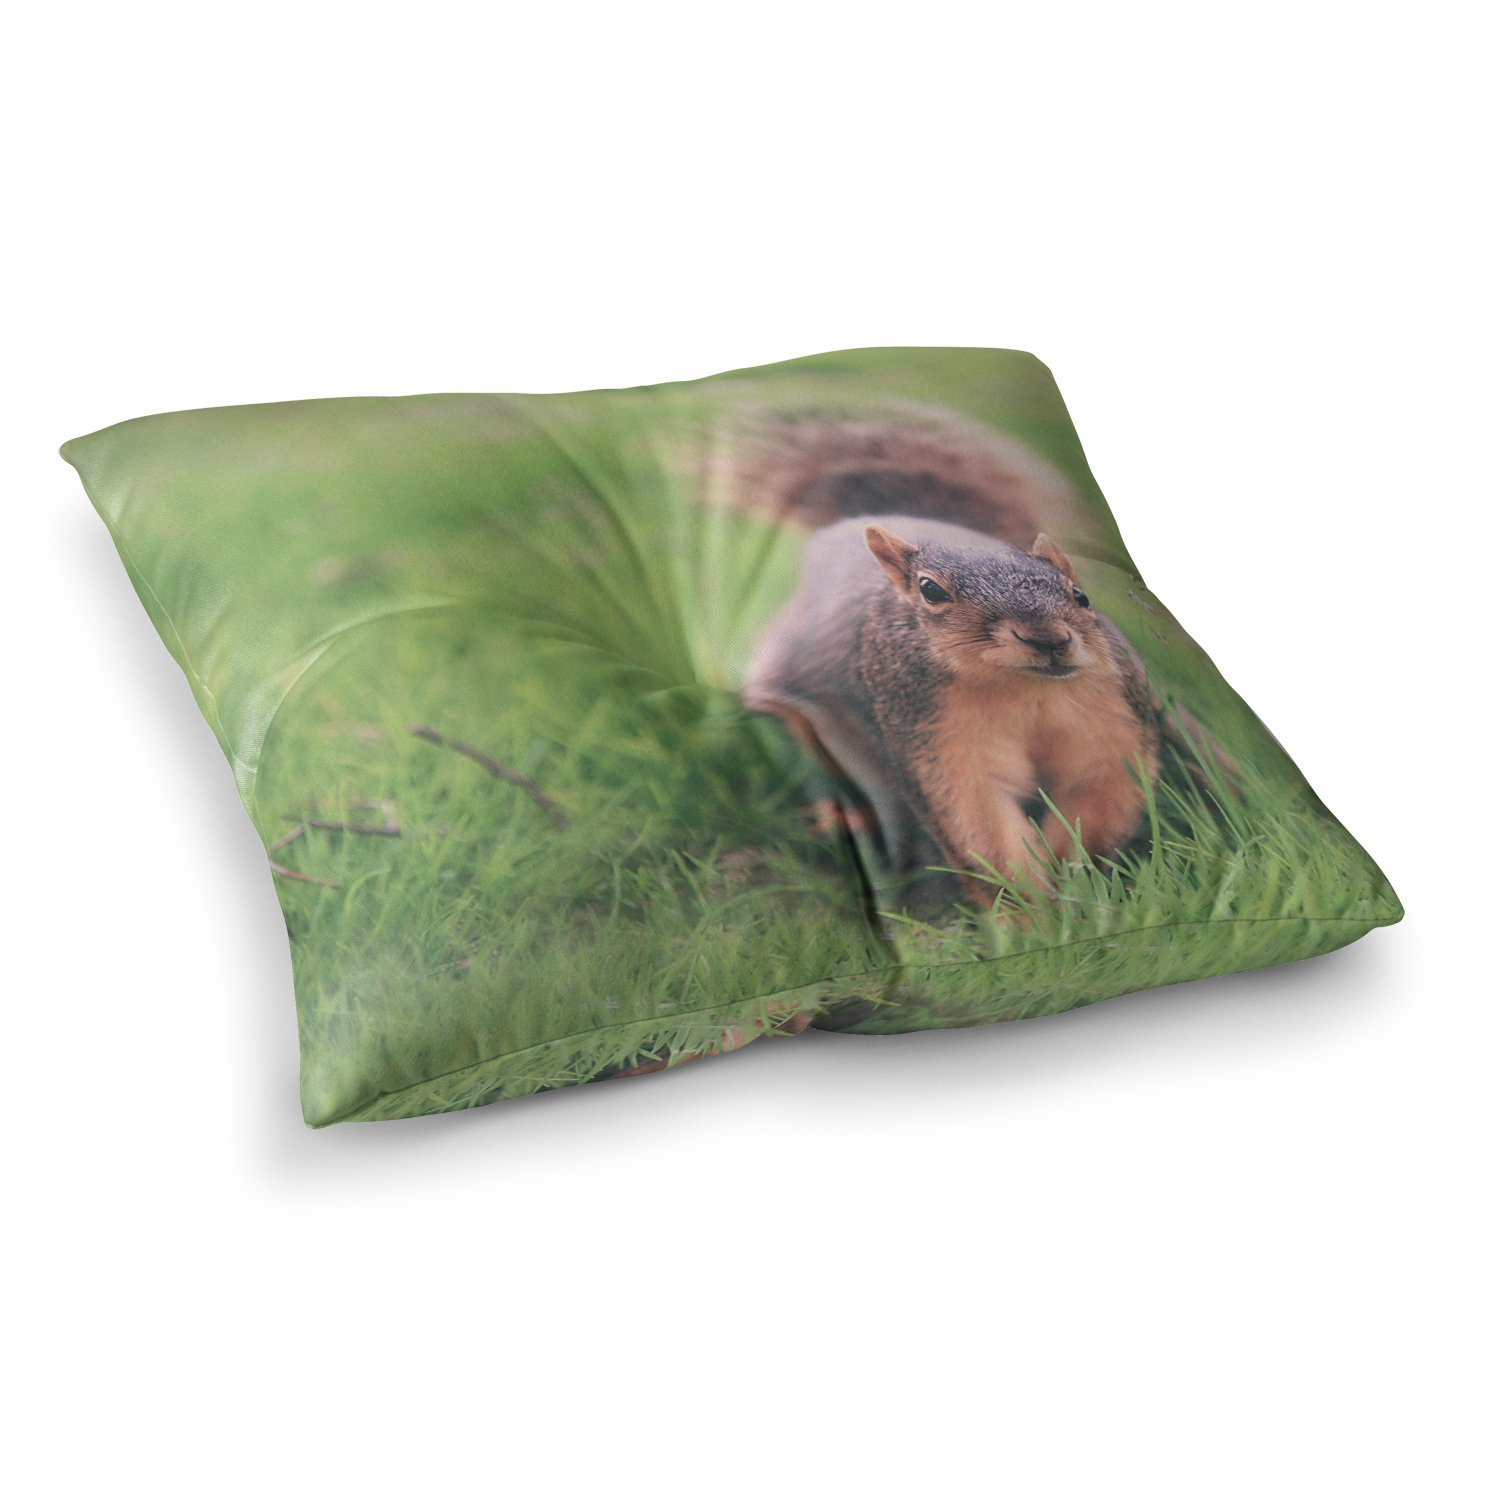 Kess InHouse Angie Turner Squirrel Brown Animals 23 x 23 Square Floor Pillow